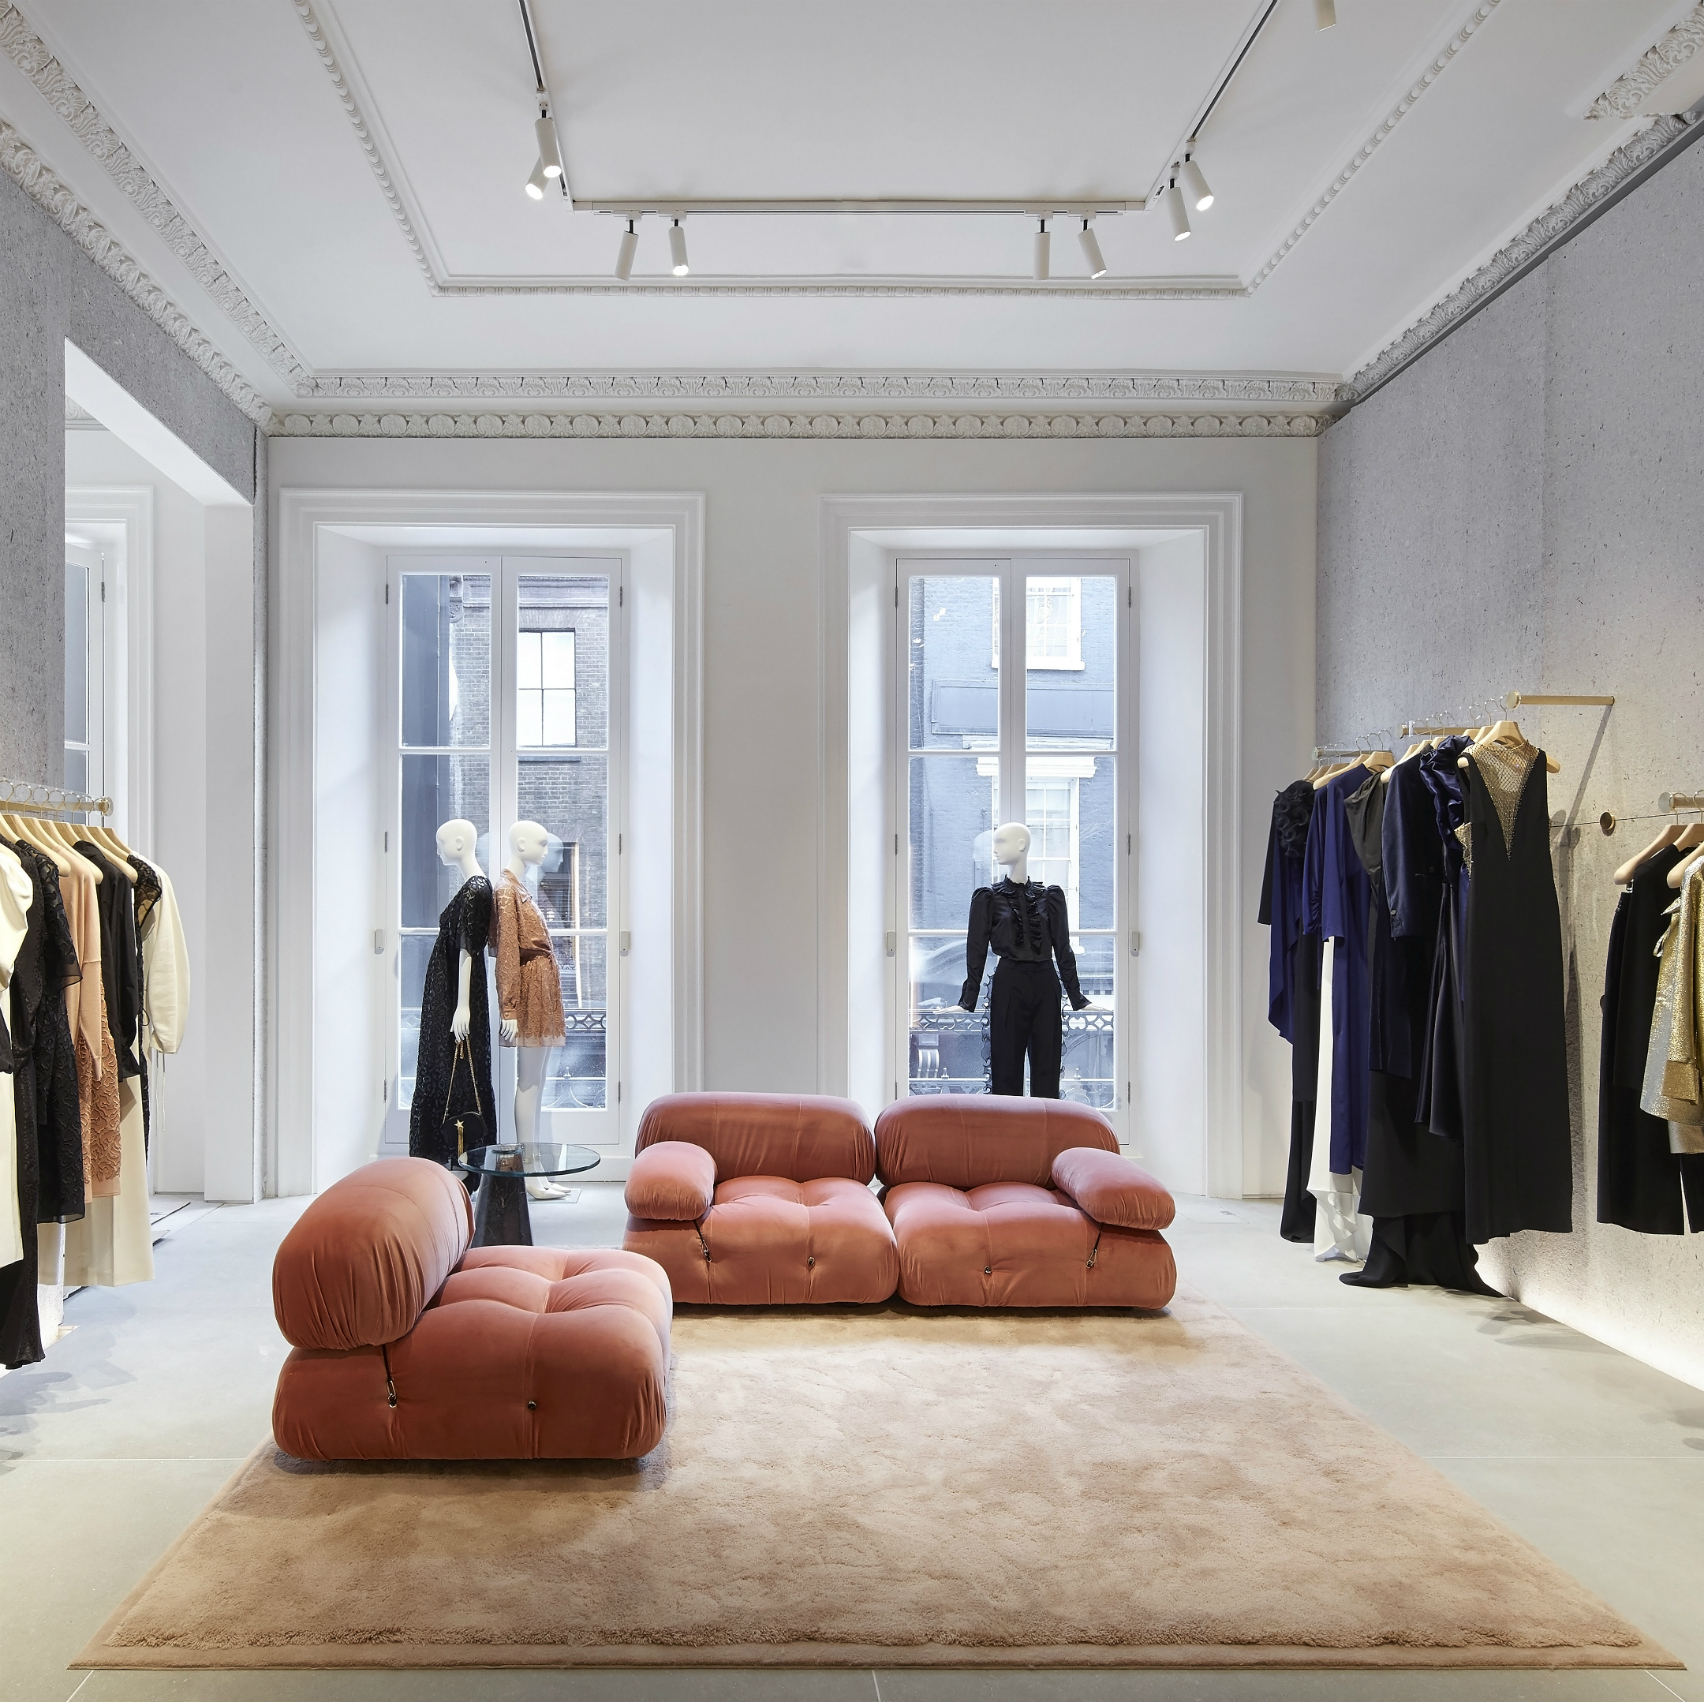 Pink Mario Bellini sofas from Stella McCartney's personal collection sit on the womenswear floor